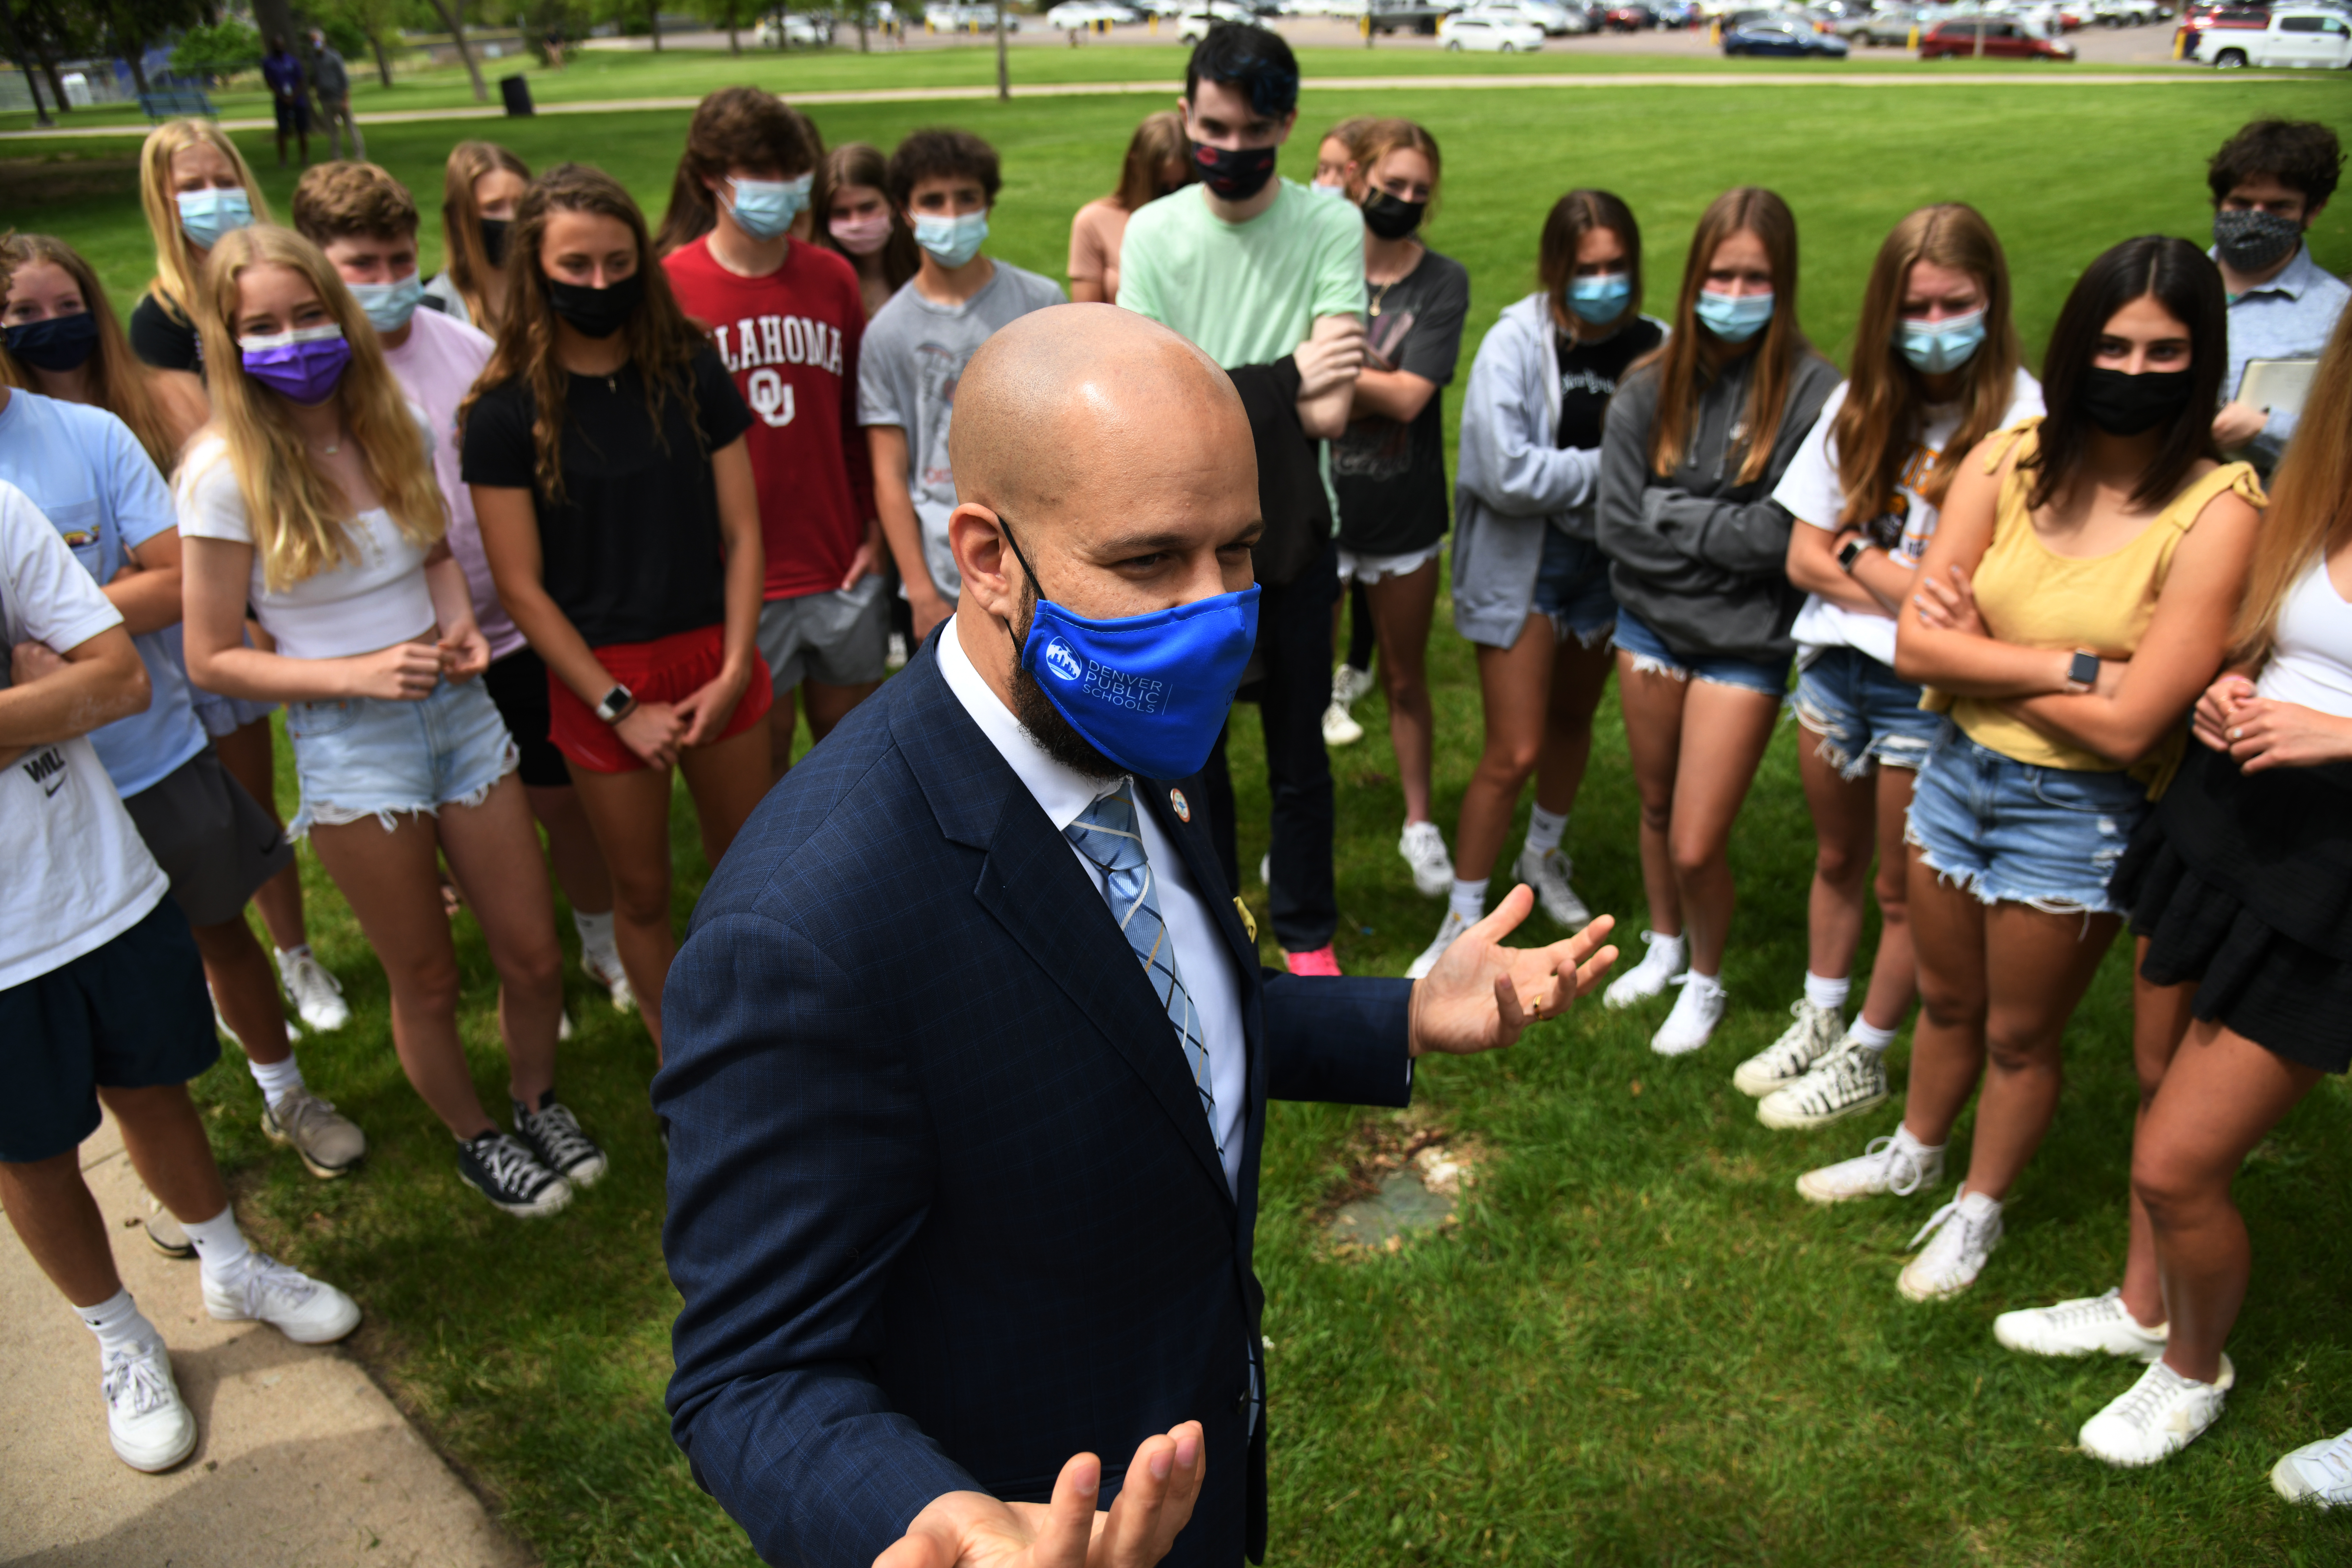 Alex Marrero, standing outside on grass and wearing a mask, is surrounded by masked high school students listening to him talk.